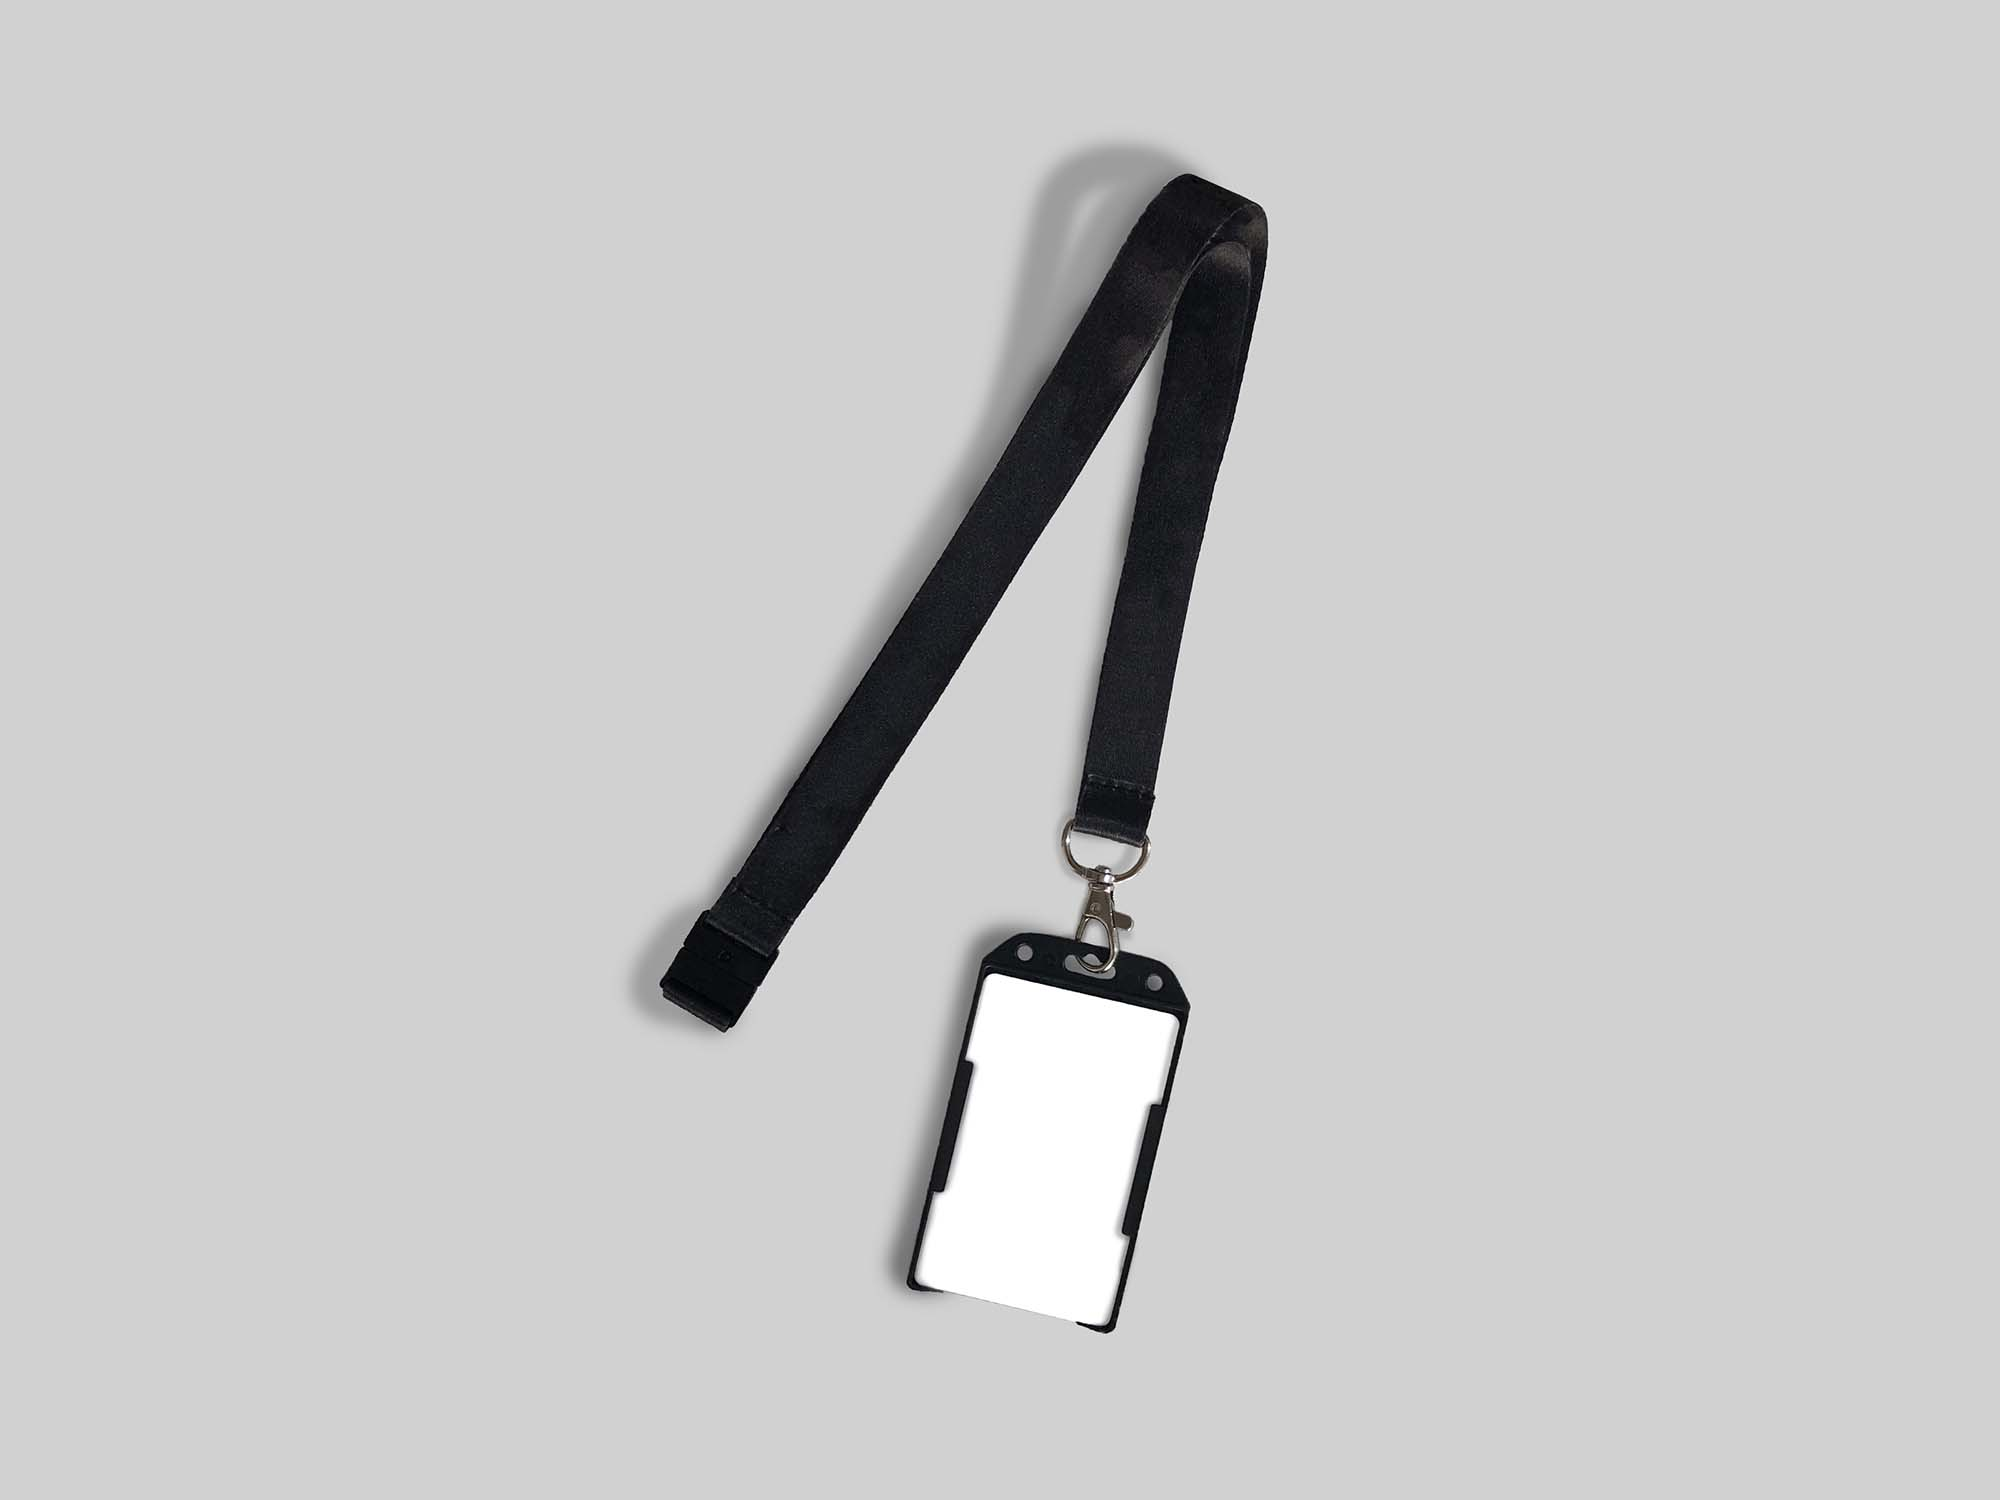 ID Card Attached to a Strap Mockup 2